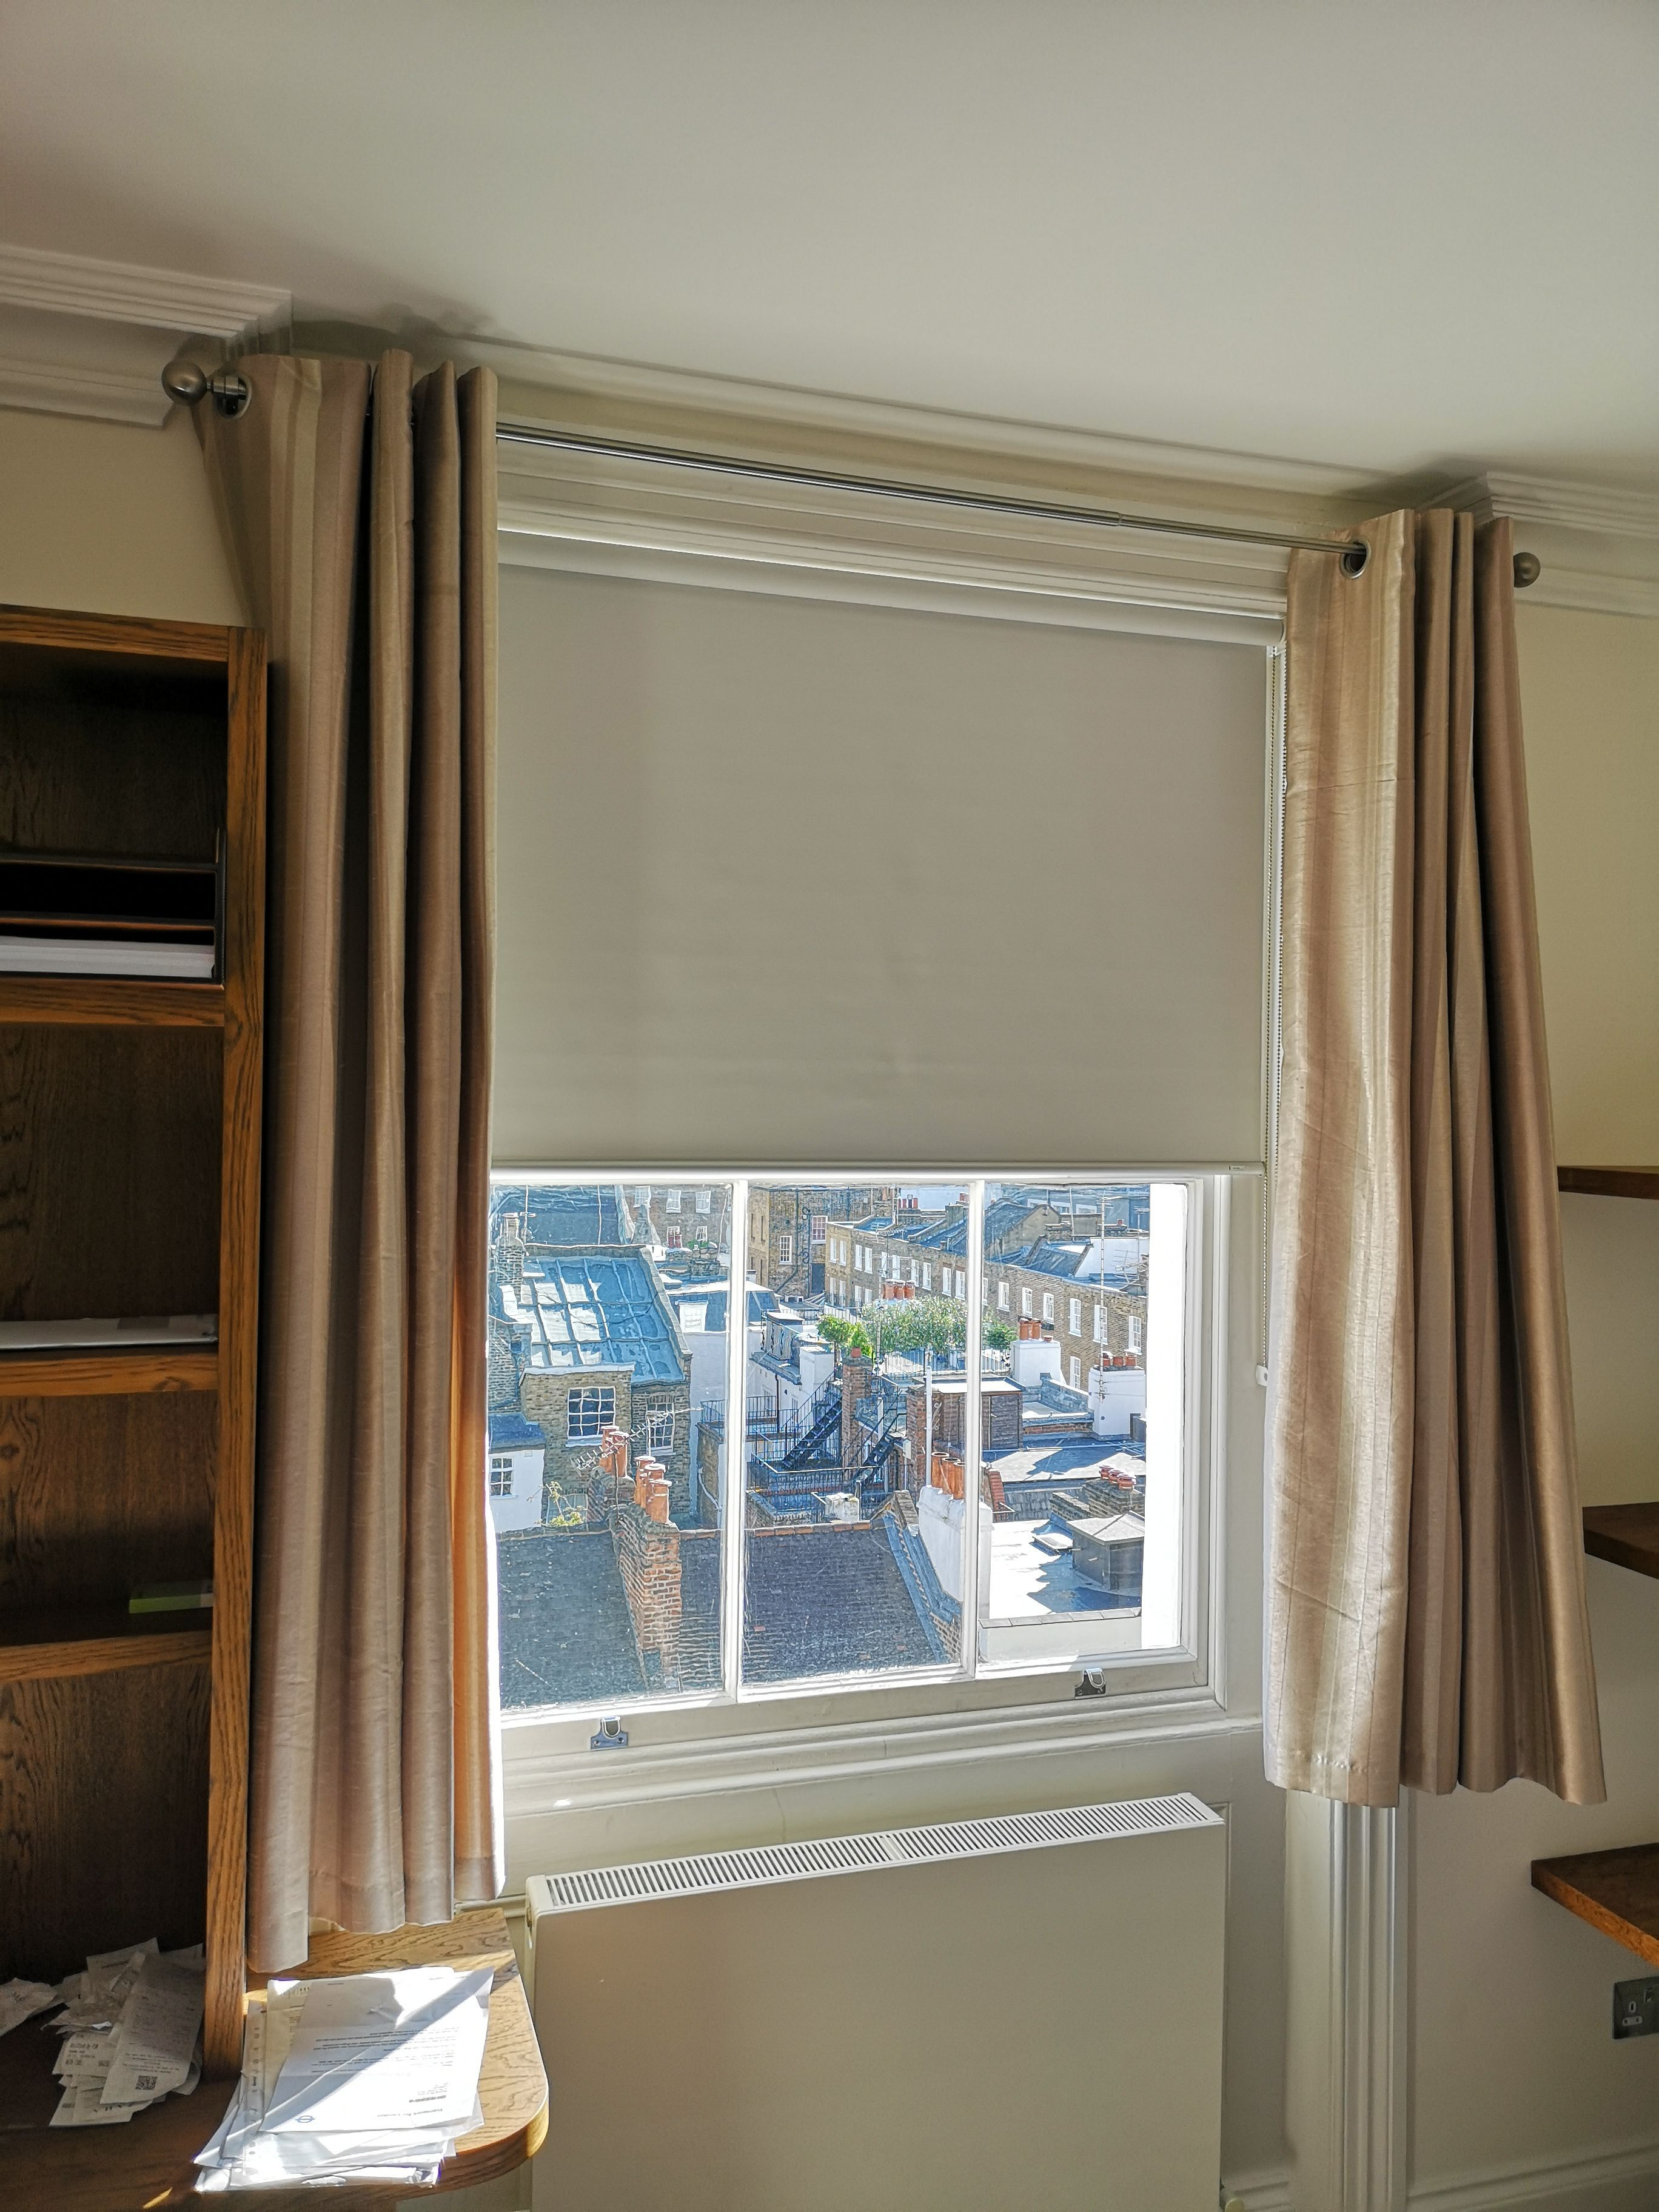 Blackout Roller Blind With Existing Curtains For Sash Window